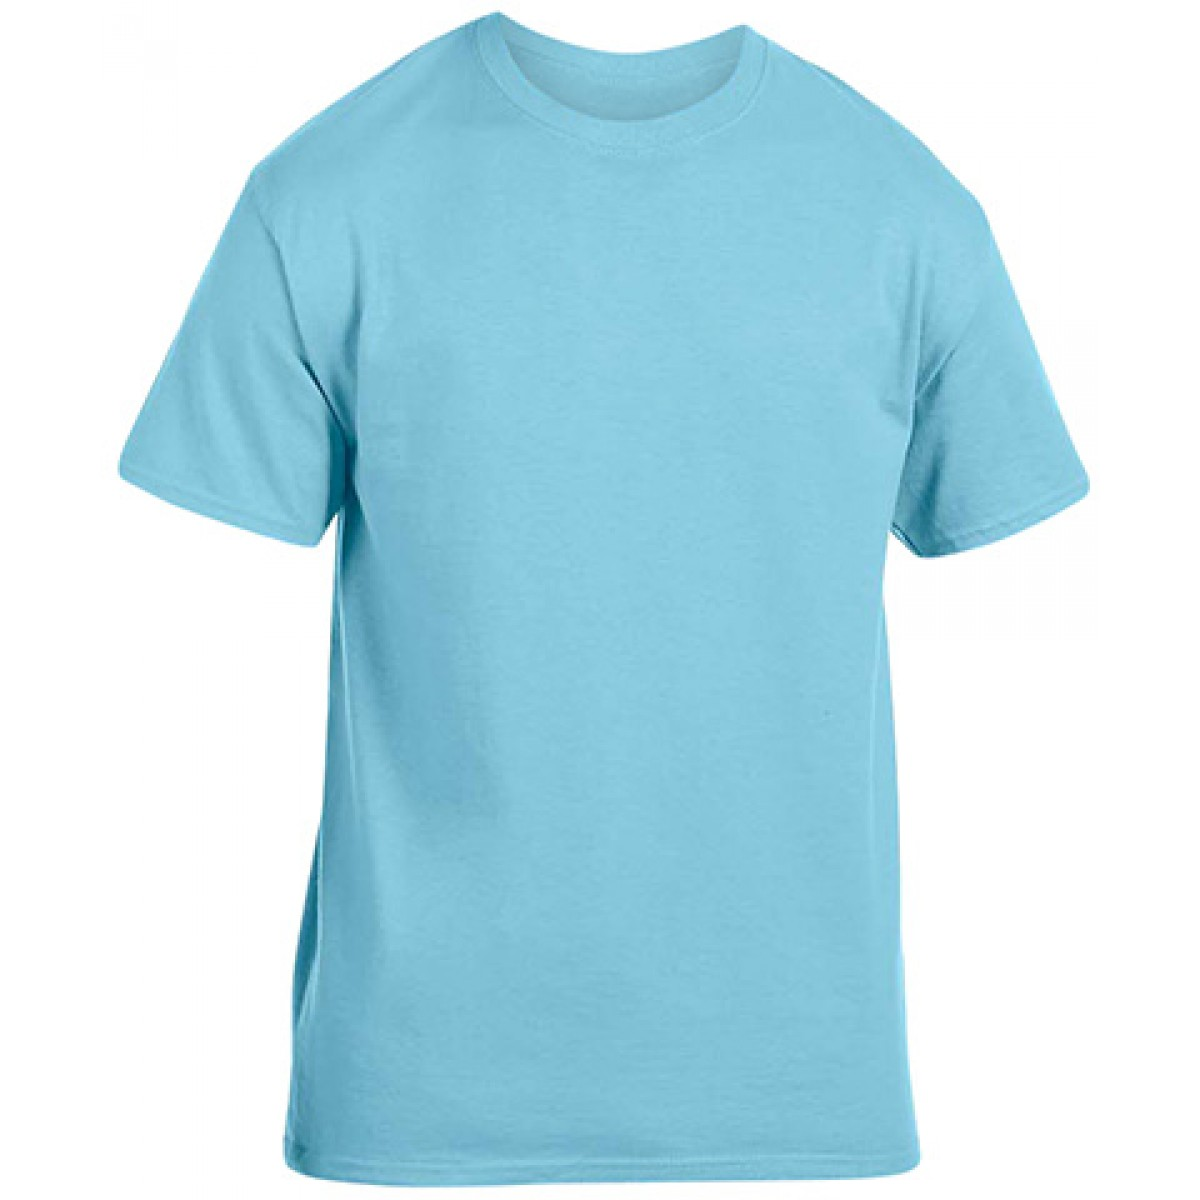 Soft 100% Cotton T-Shirt-Sky Blue-3XL